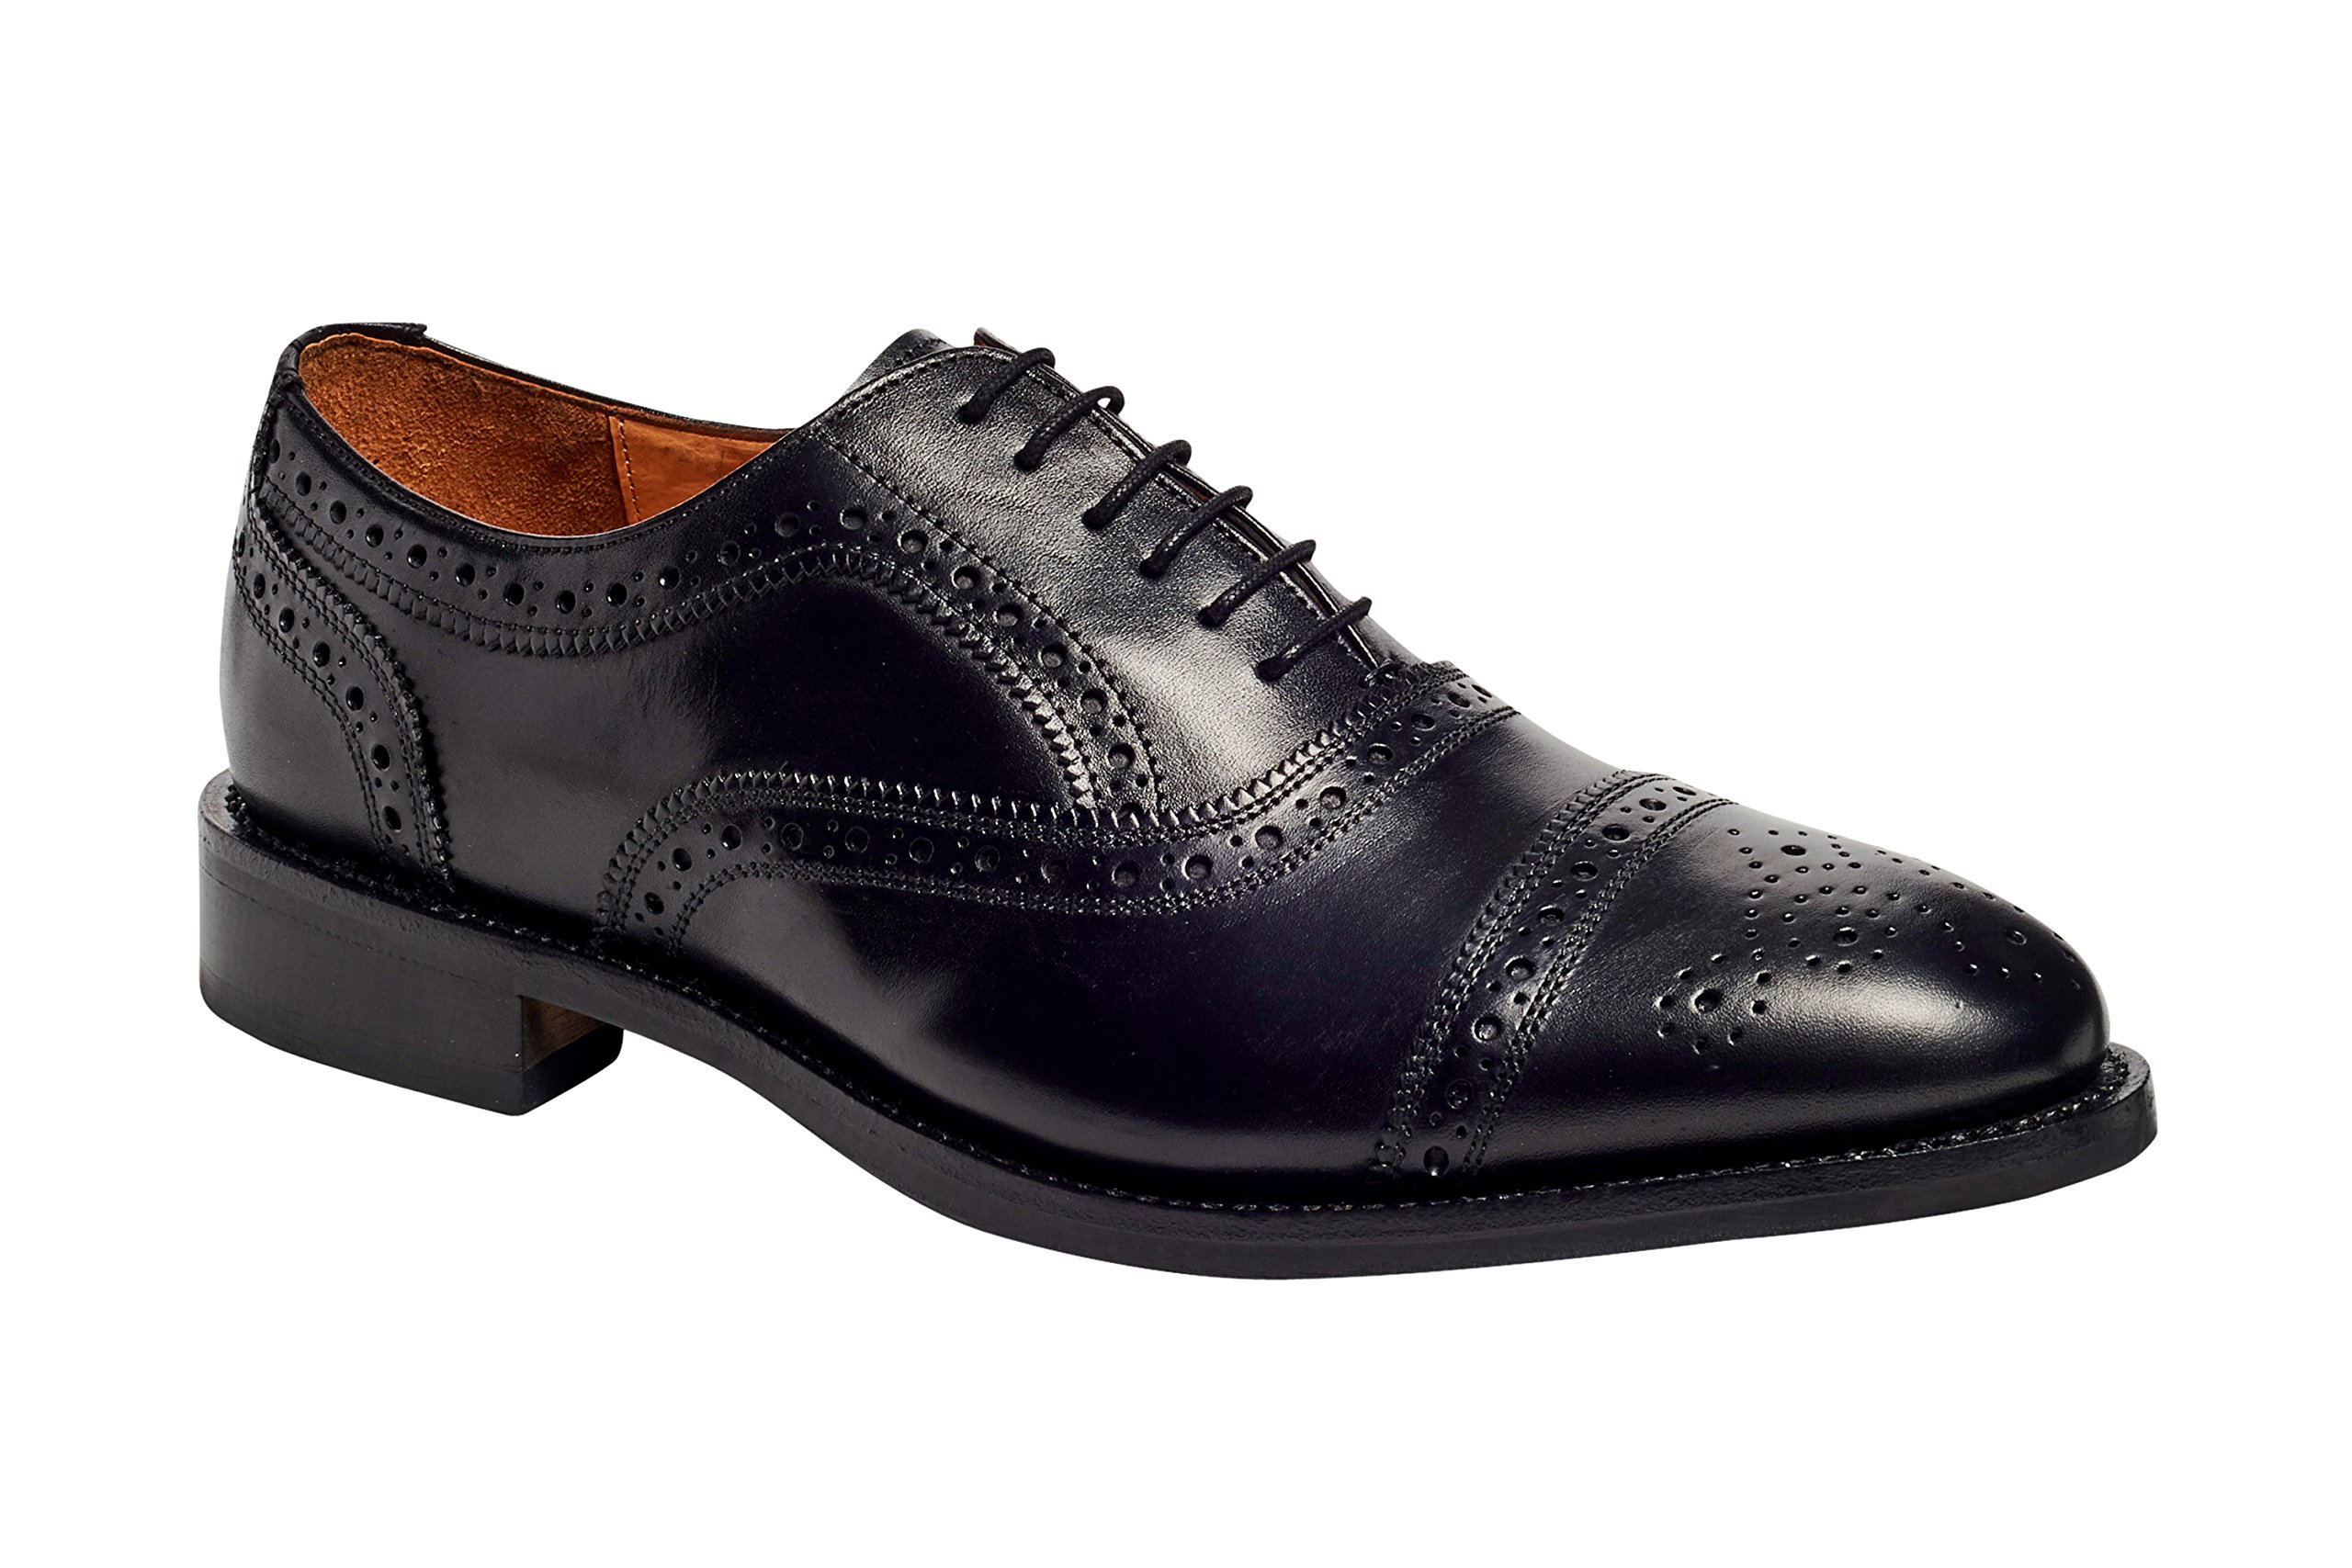 Anthony Veer Mens Ford Oxford Semi Brogue Leather Shoes in Goodyear Welted Construction (8 D, Black)